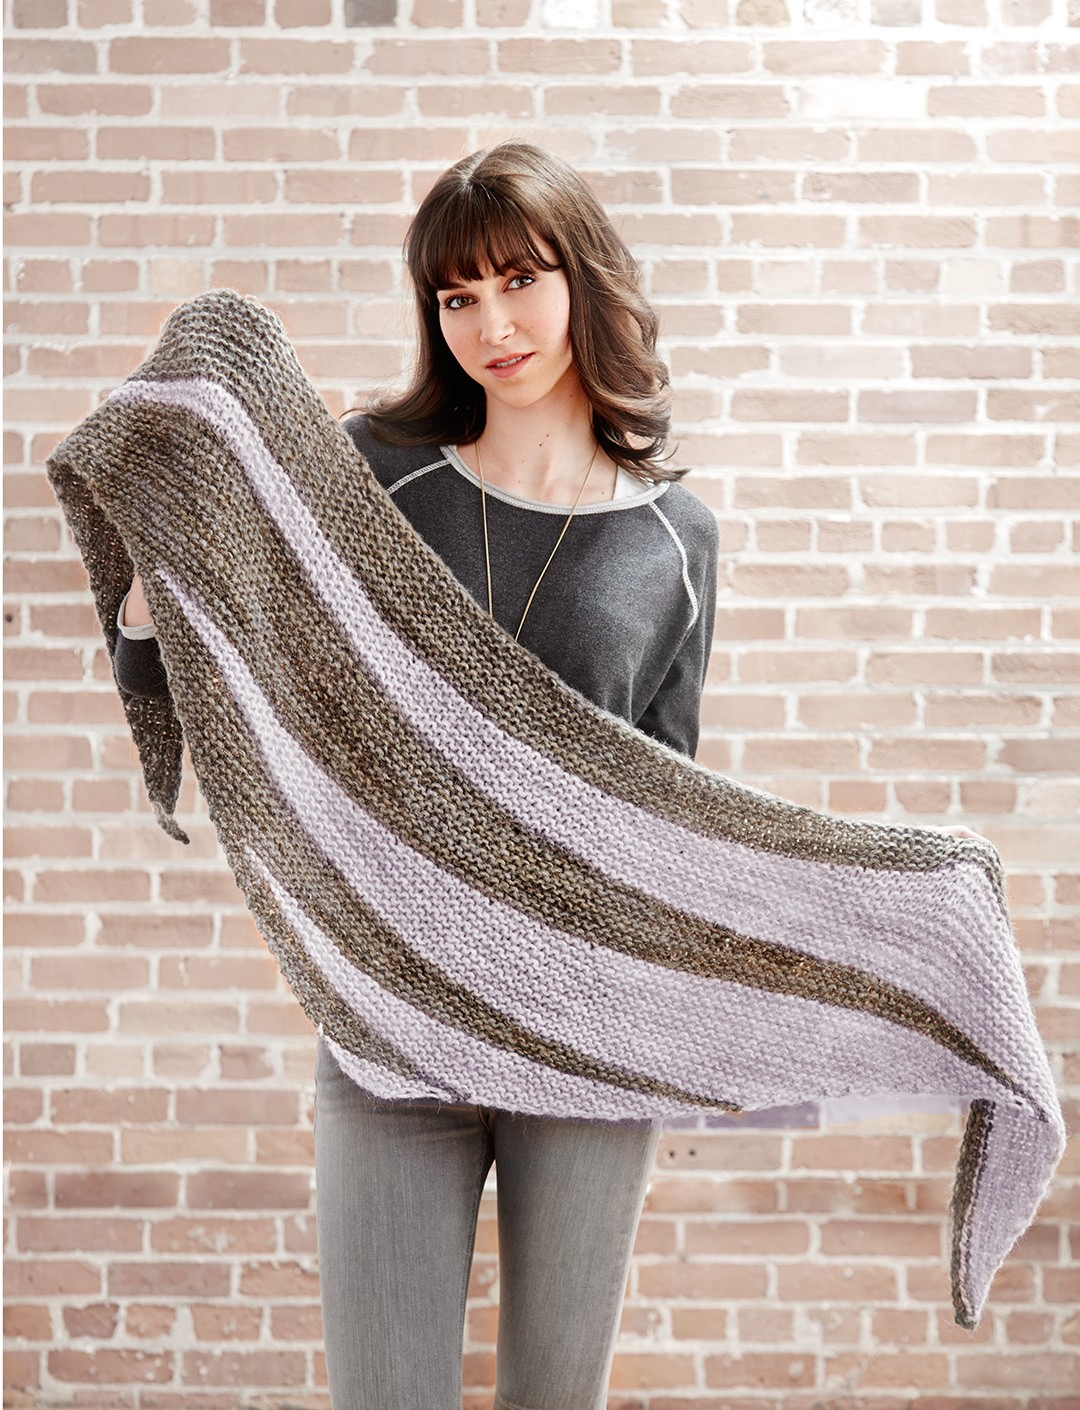 Free Pattern Friday: Knit Shawl Pattern from Yarnspirations - Stitch and Unwind